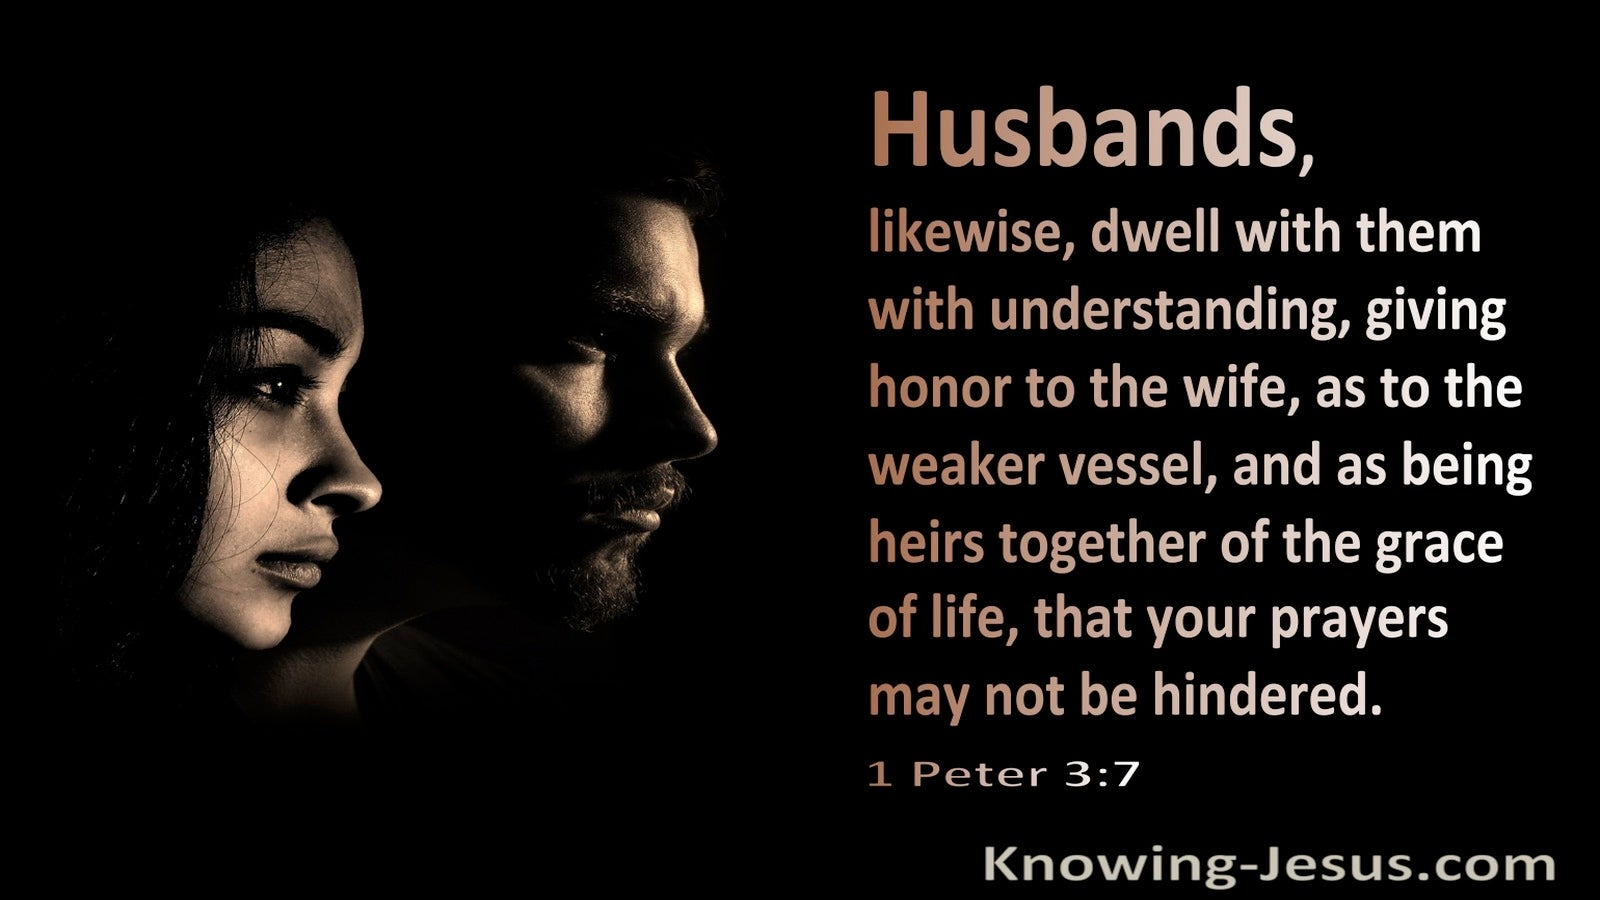 1 Peter 3:7 Husbands Dwell With Your Wife As To The Weaker Vessel (black)